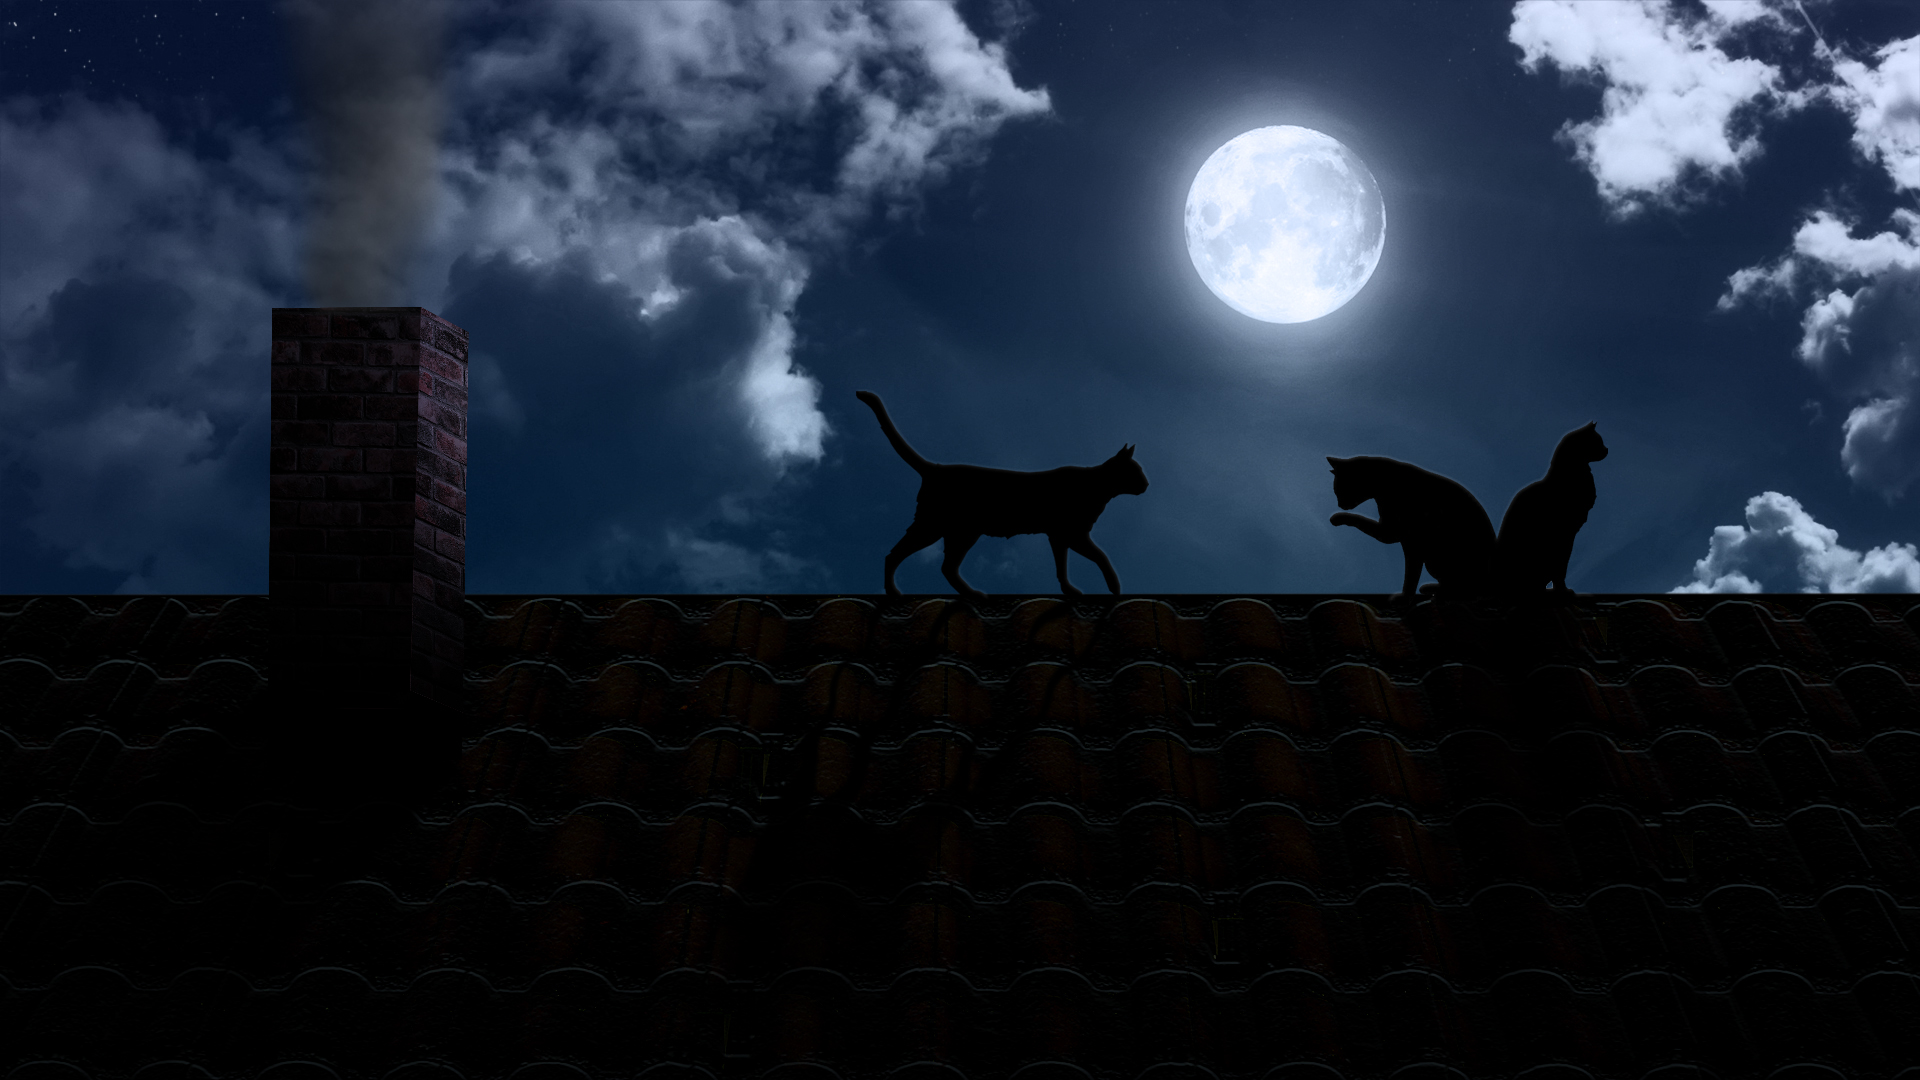 image - moon-light-cat-desktop-background | animal jam clans